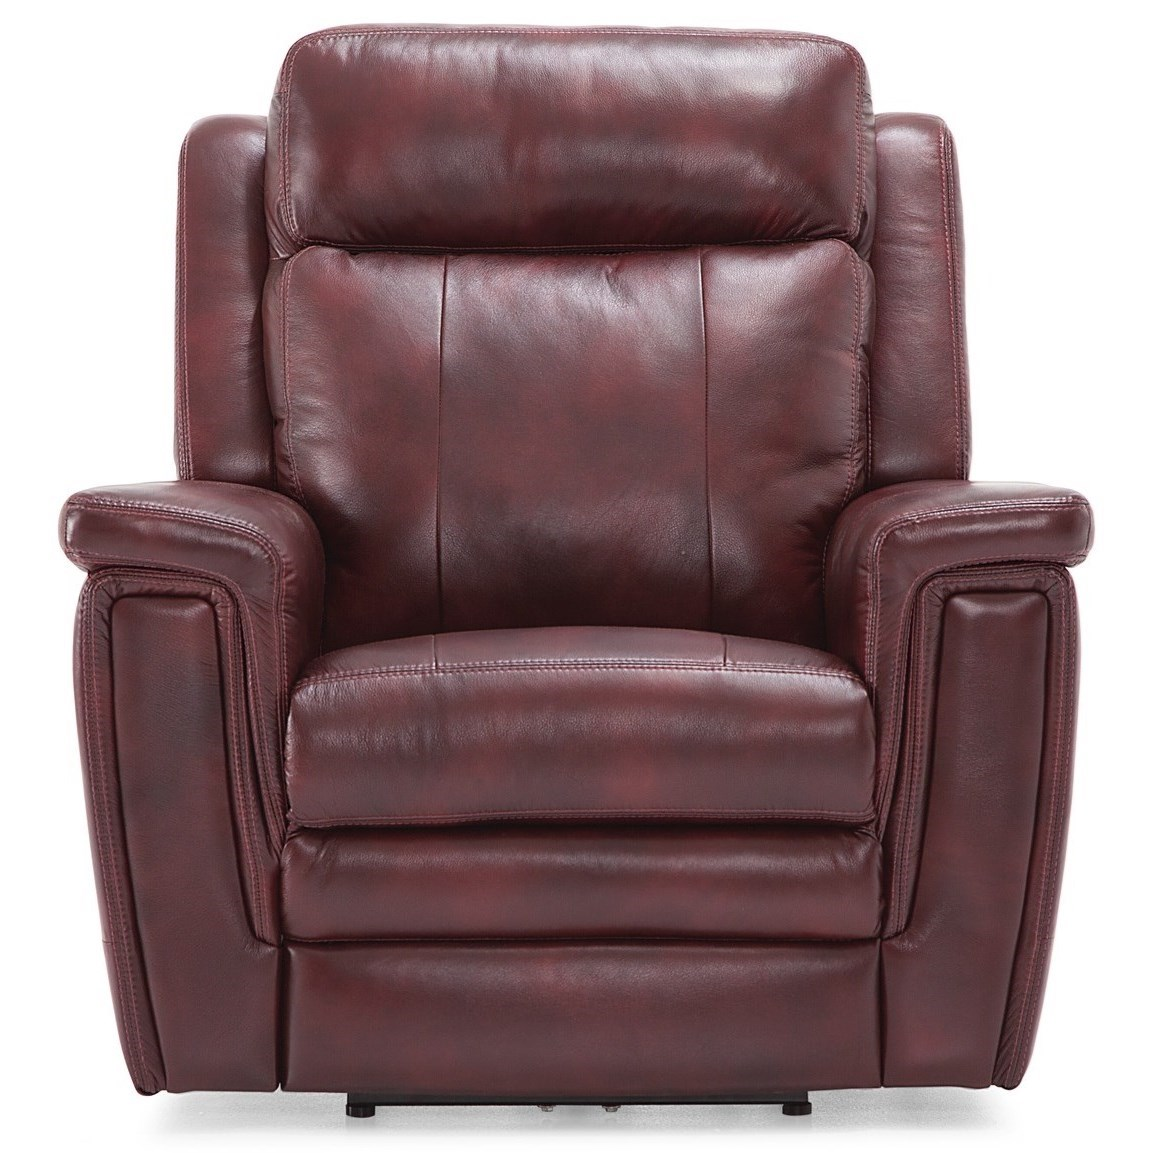 Asher Wallhugger Power Recliner w/ Power HR by Palliser at Jordan's Home Furnishings